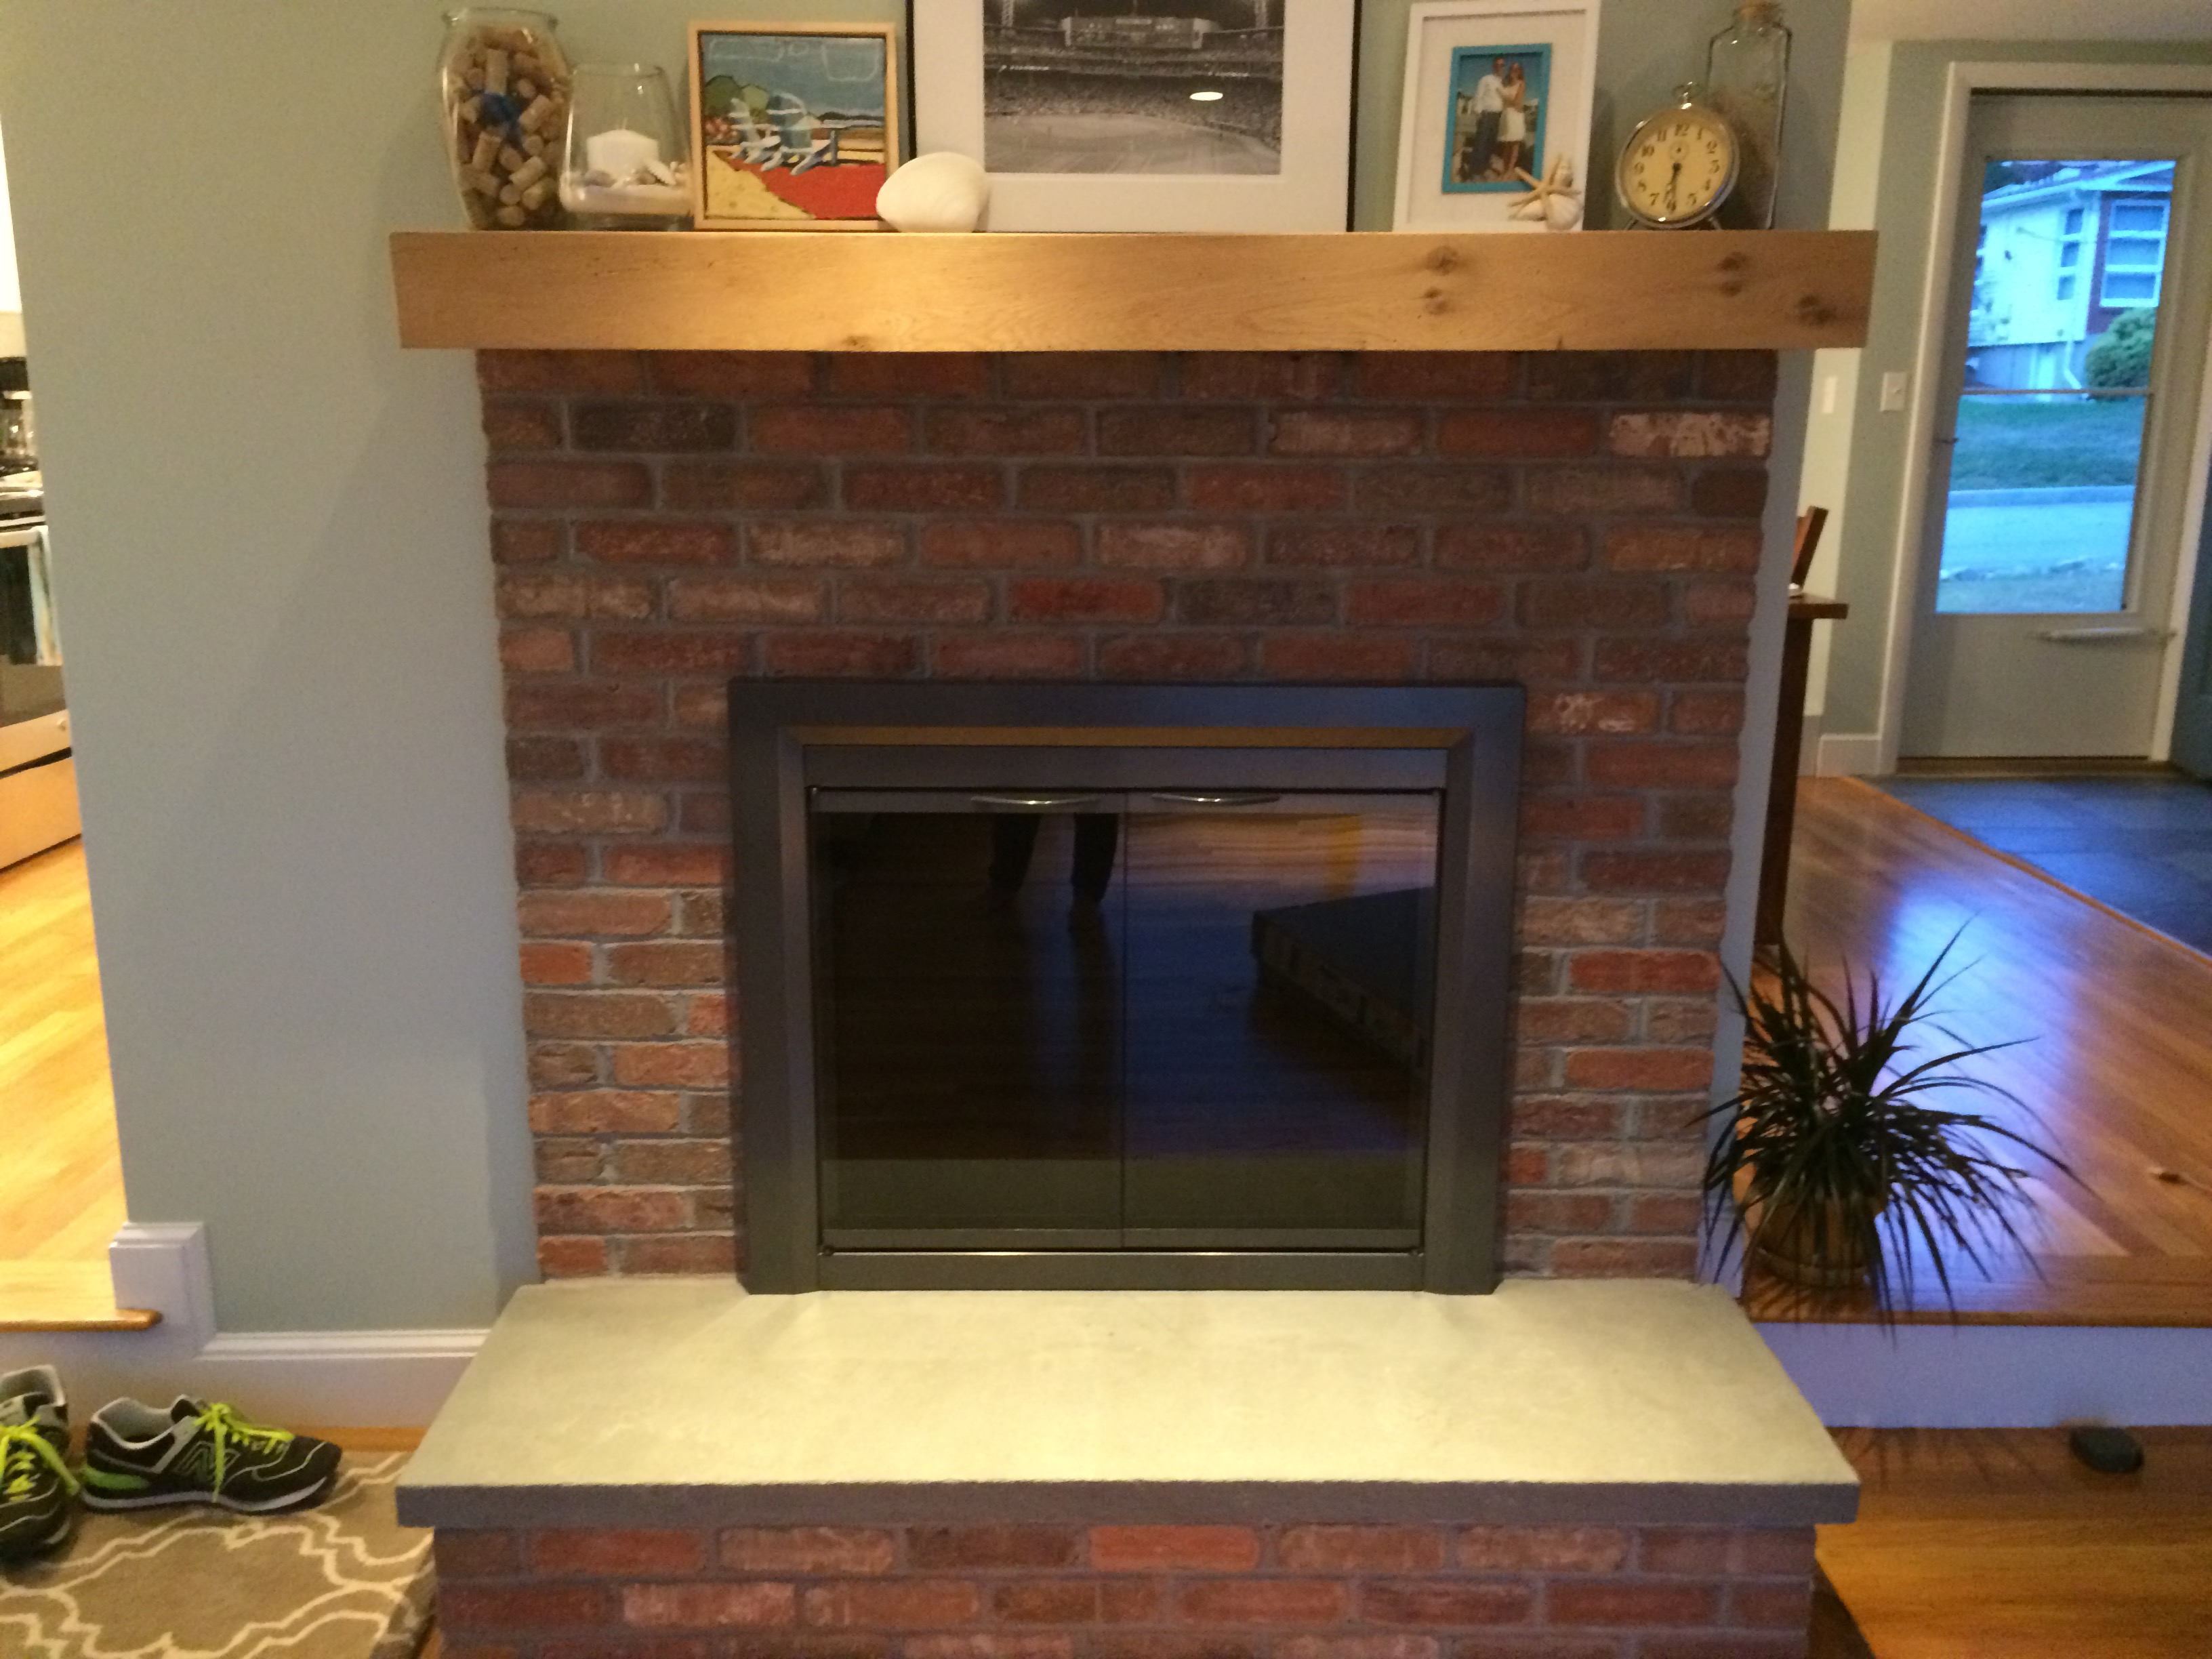 Lowes Fireplace Mantel | Fireplace Kits Lowes | Oak Fireplace Mantel